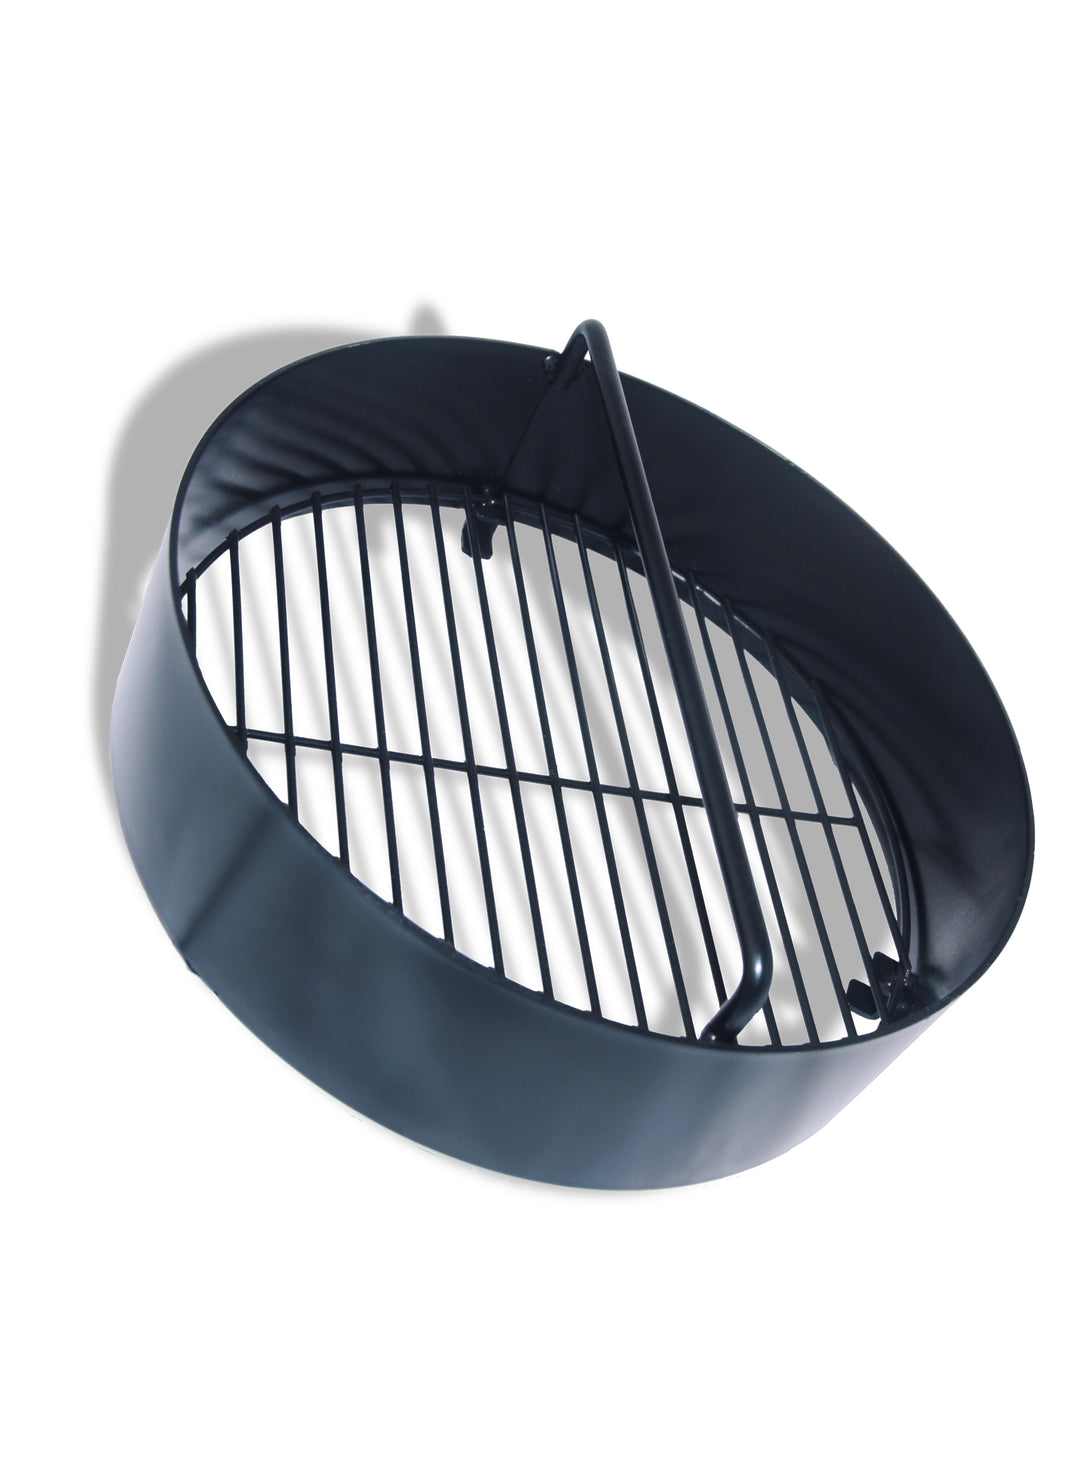 18.5 Pbc Replacement Charcoal Basket